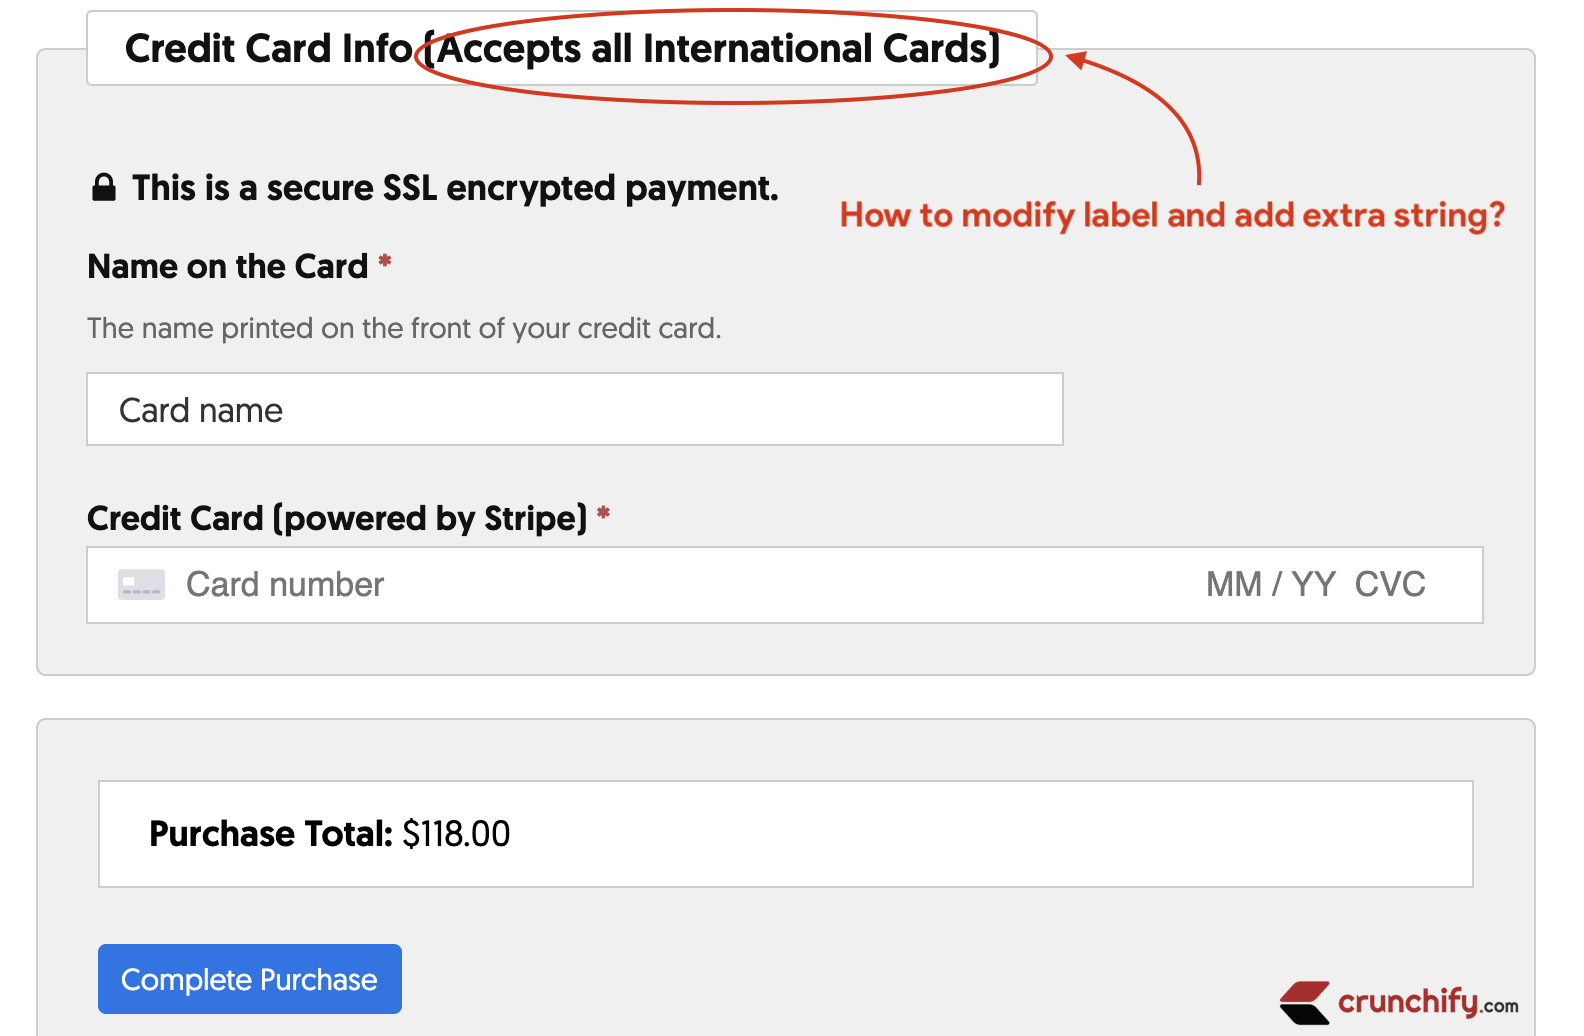 Modify text from Credit Card Info to Credit Card Info (Accepts all International Cards)